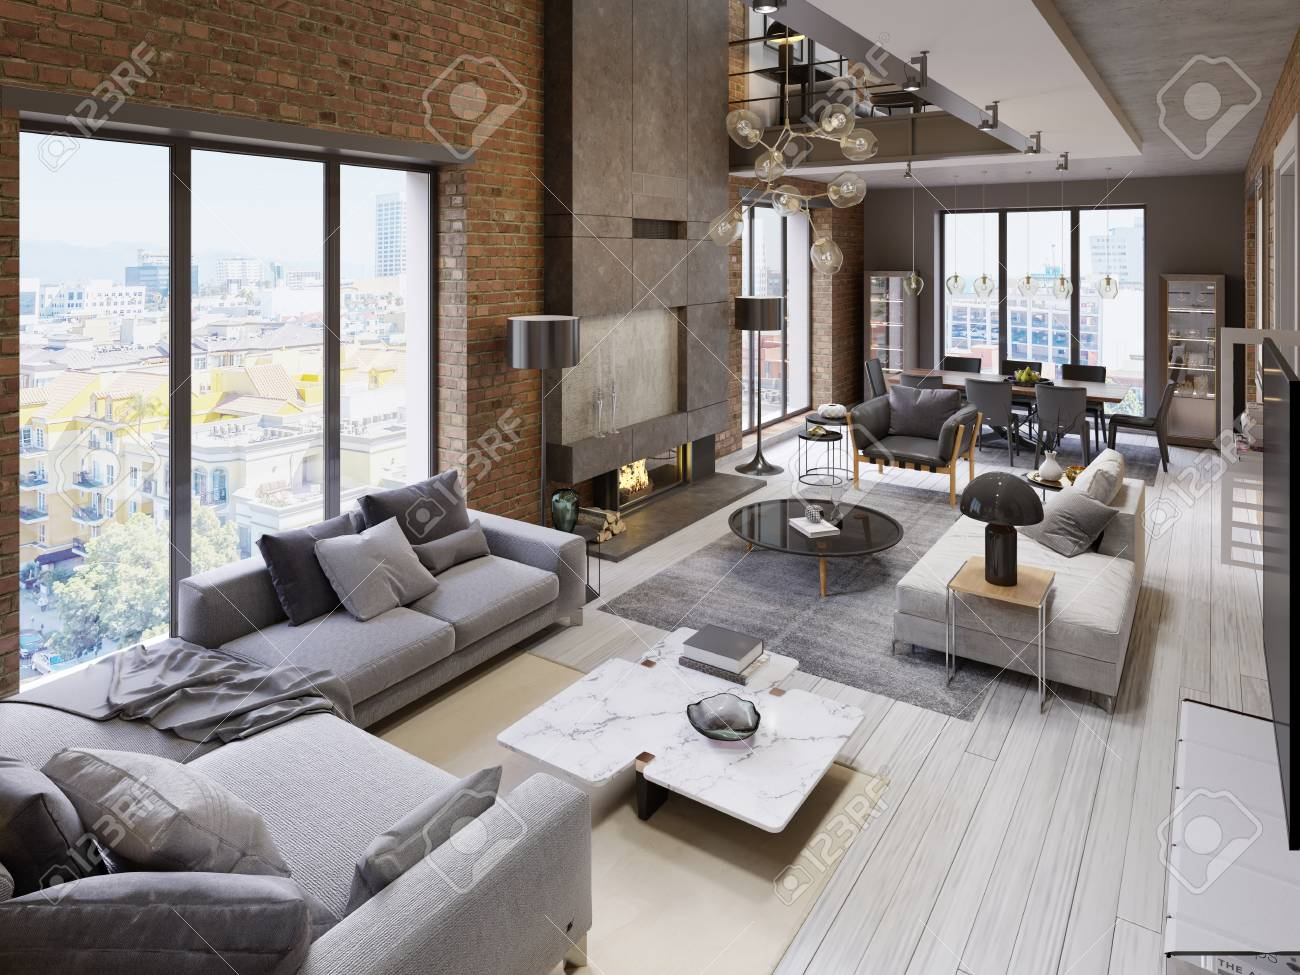 Large modern loft-style apartment with sofas, armchair, fireplace,..